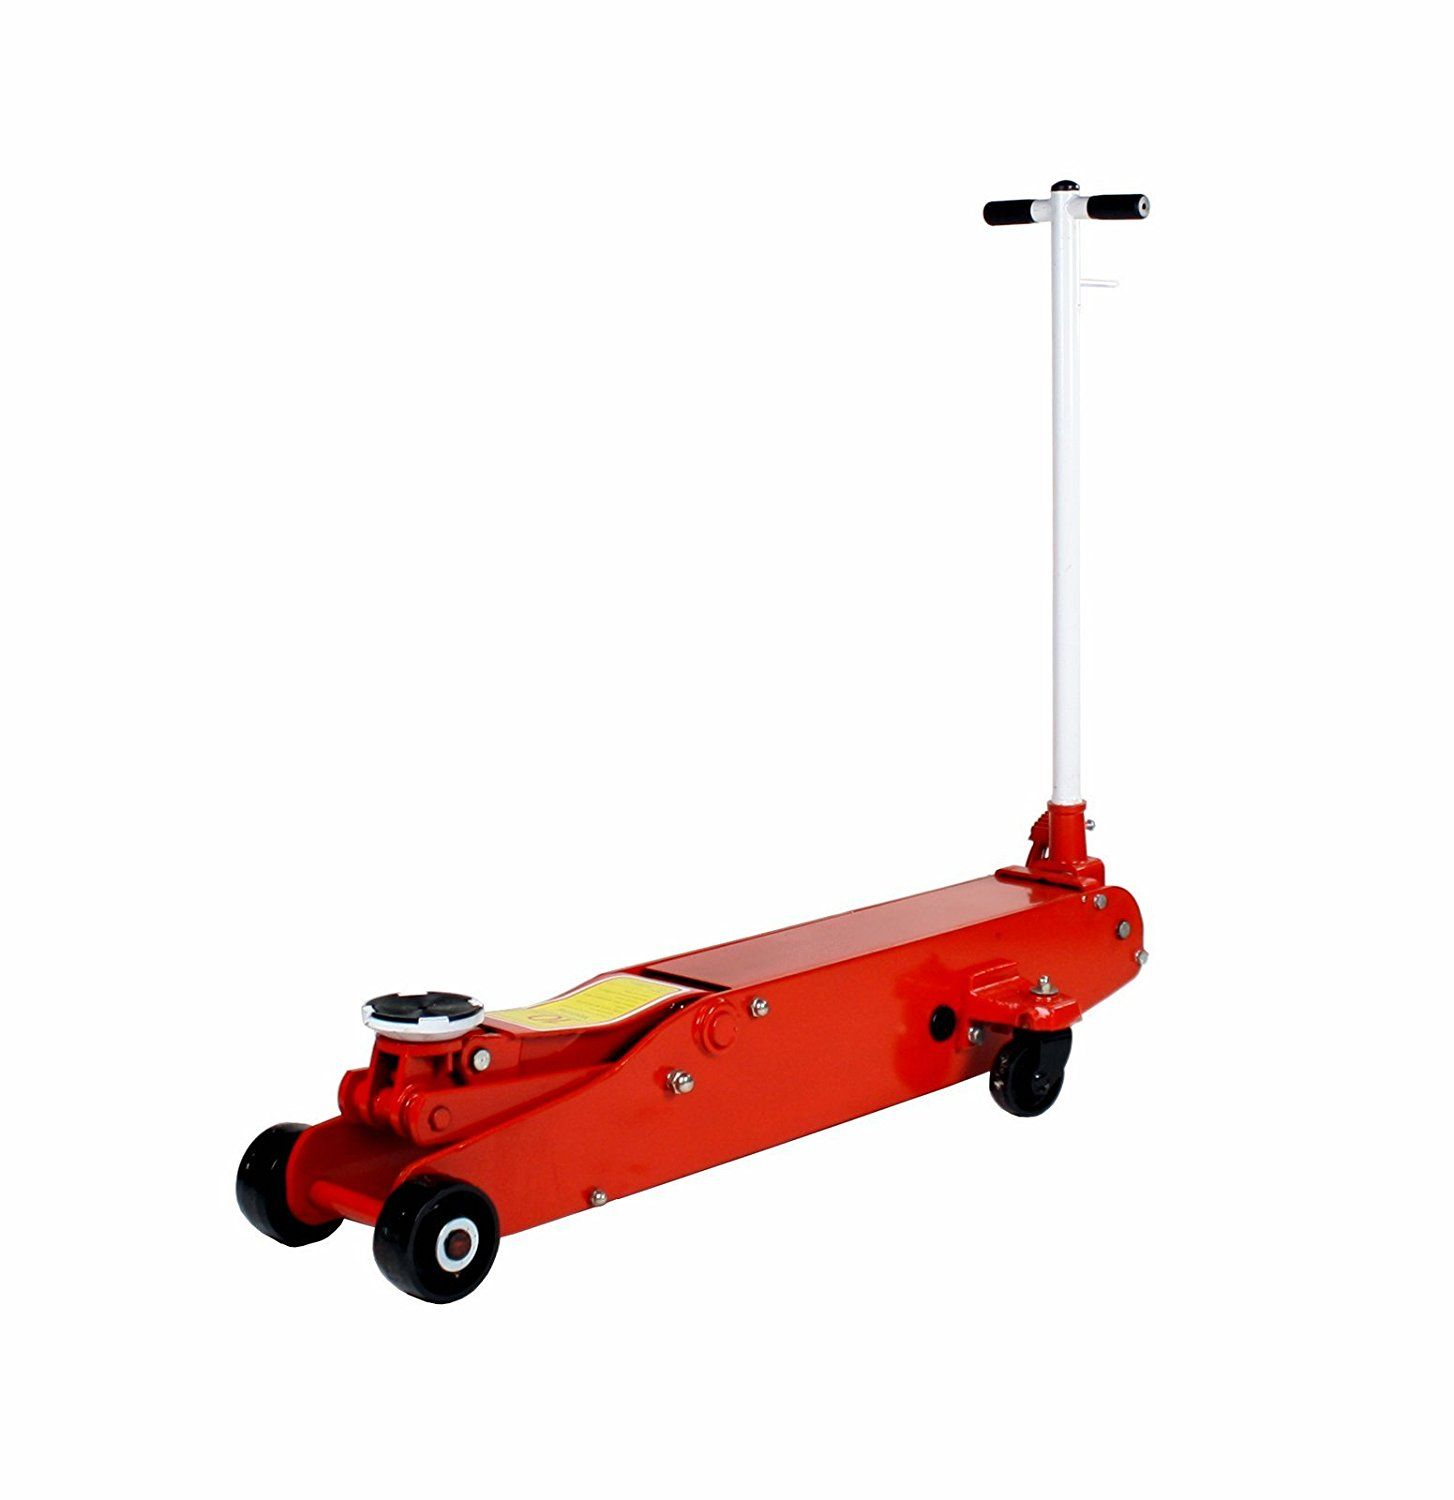 Dragway Tools 10 Ton Low Profile Floor Jack Lift Hoist For Truck Rv Automotive Floor Jack High Performance Cars Chevy Muscle Cars